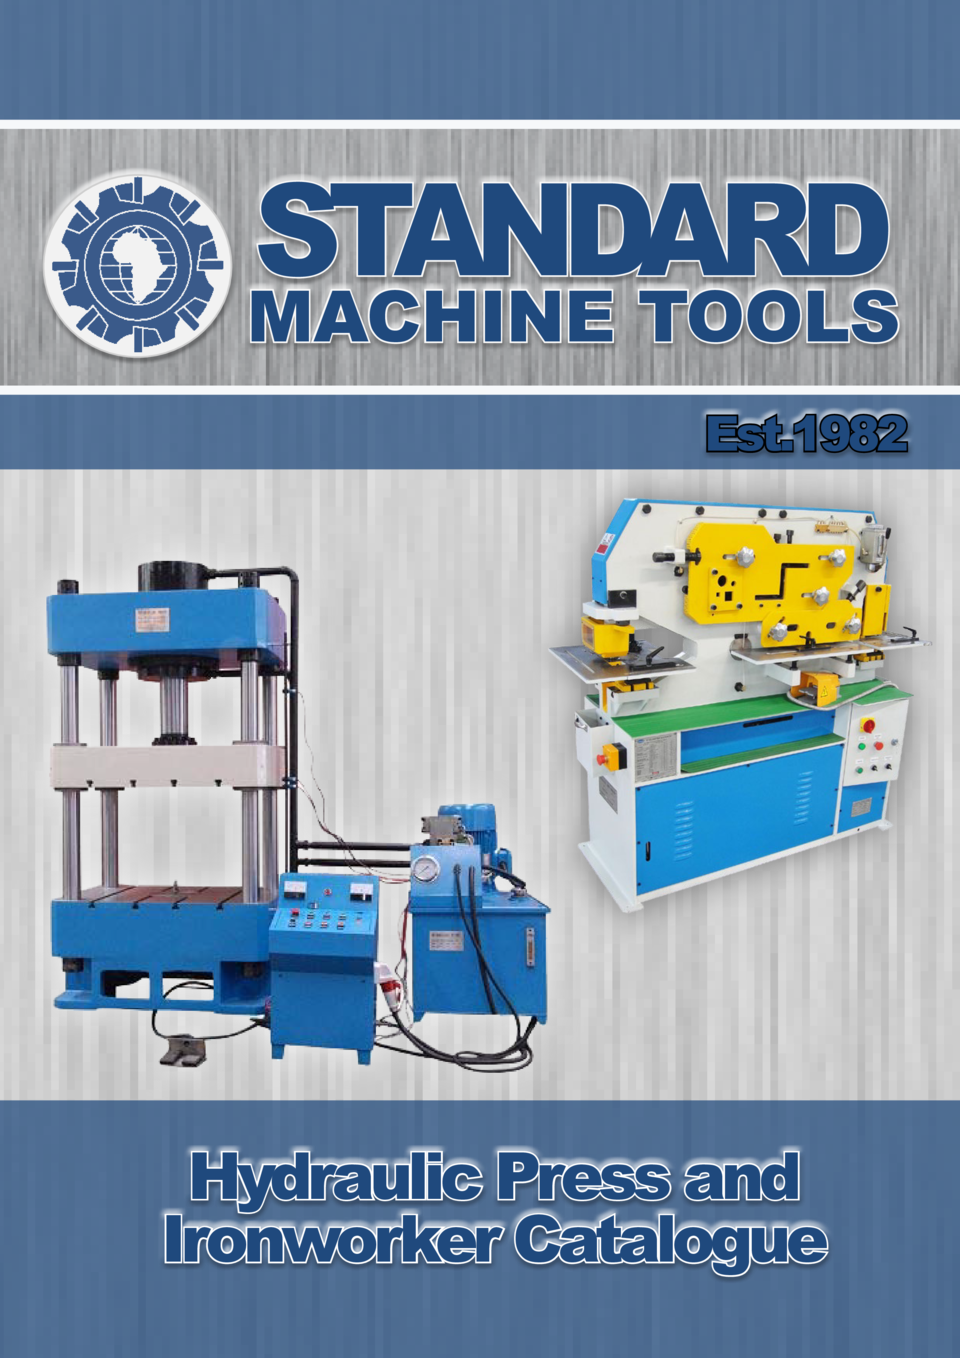 STANDARD  MACHINE TOOLS Est.1982  Hydraulic Press and Ironworker Catalogue